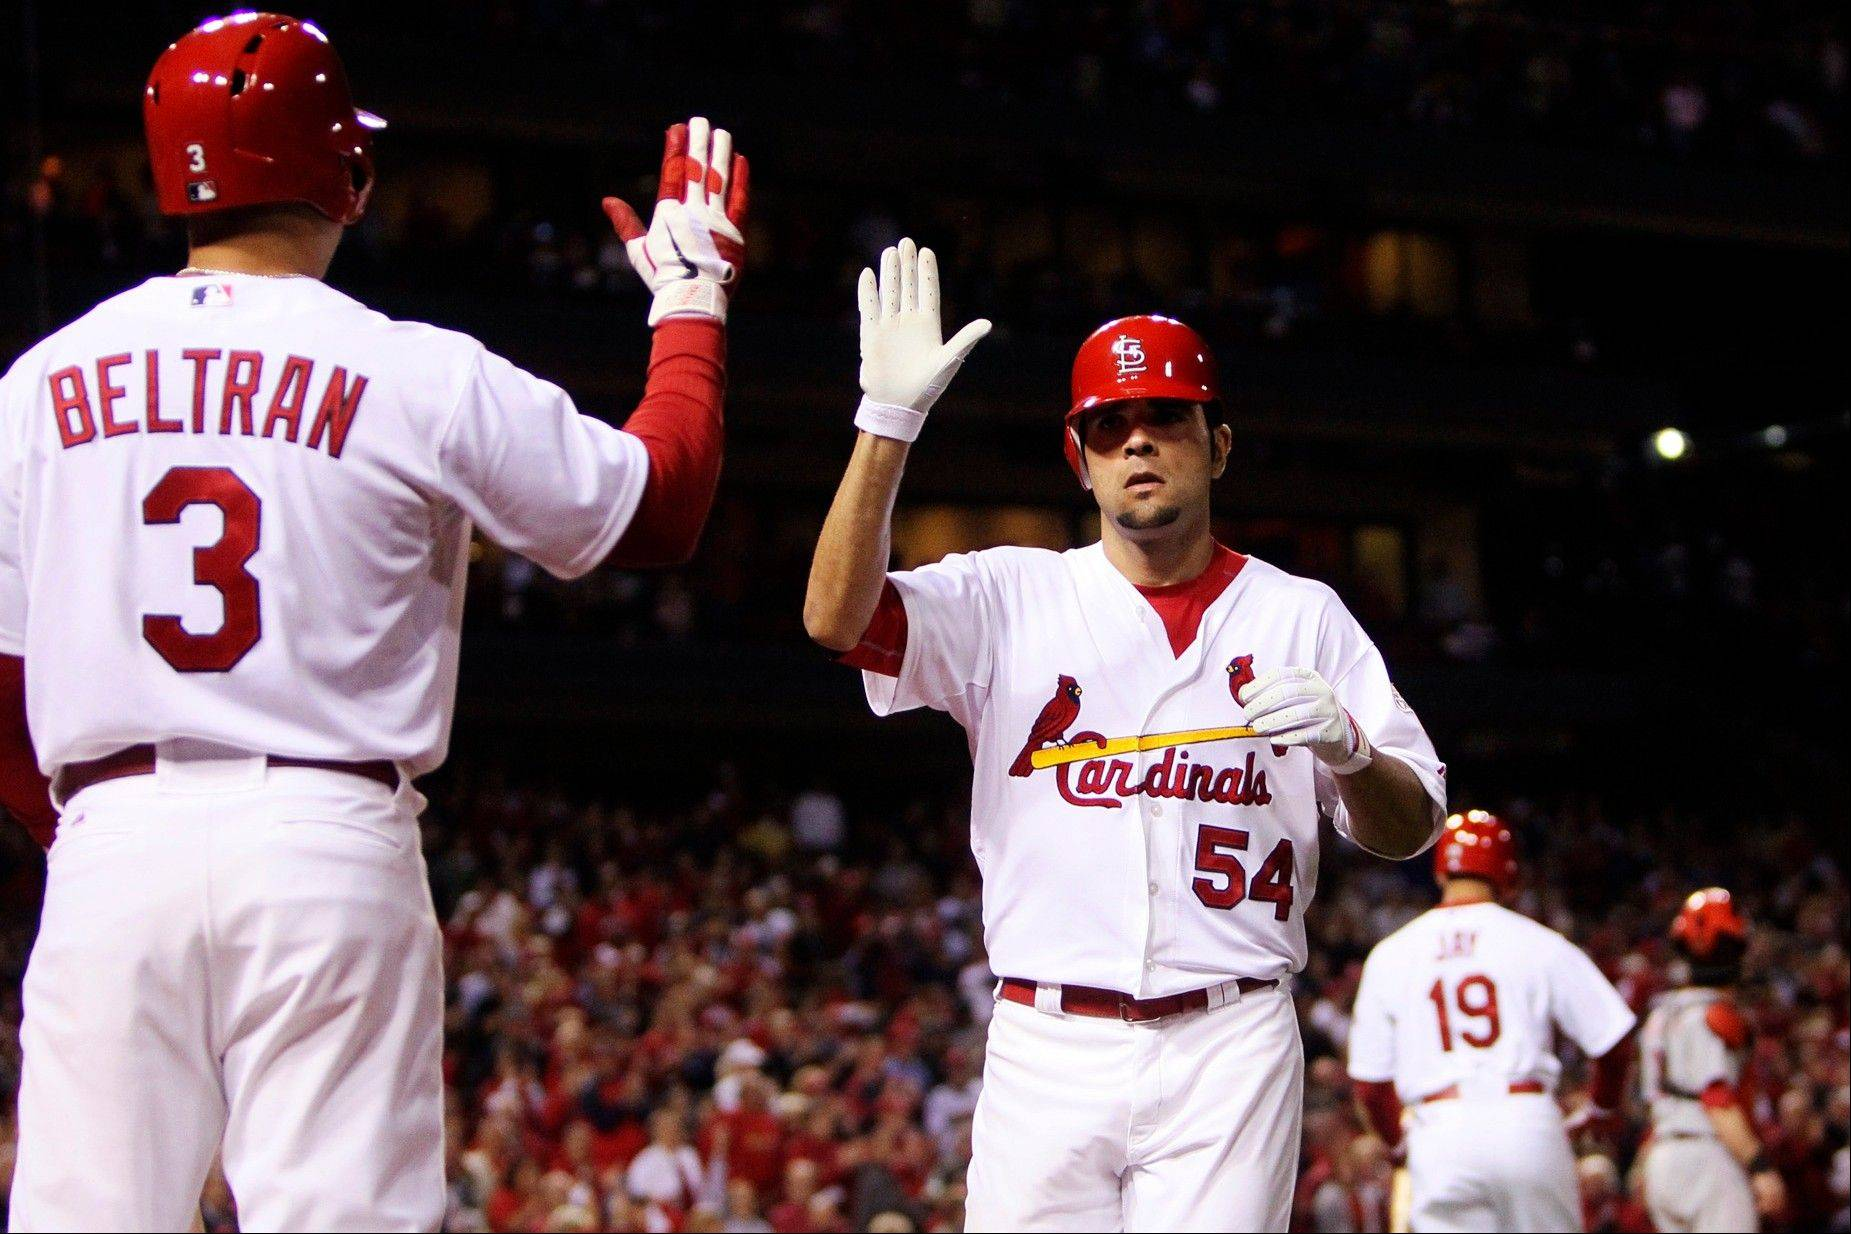 The Cardinals' Carlos Beltran congratulates Jaime Garcia on his solo home run against the Cincinnati Reds in the third inning Monday in St. Louis.